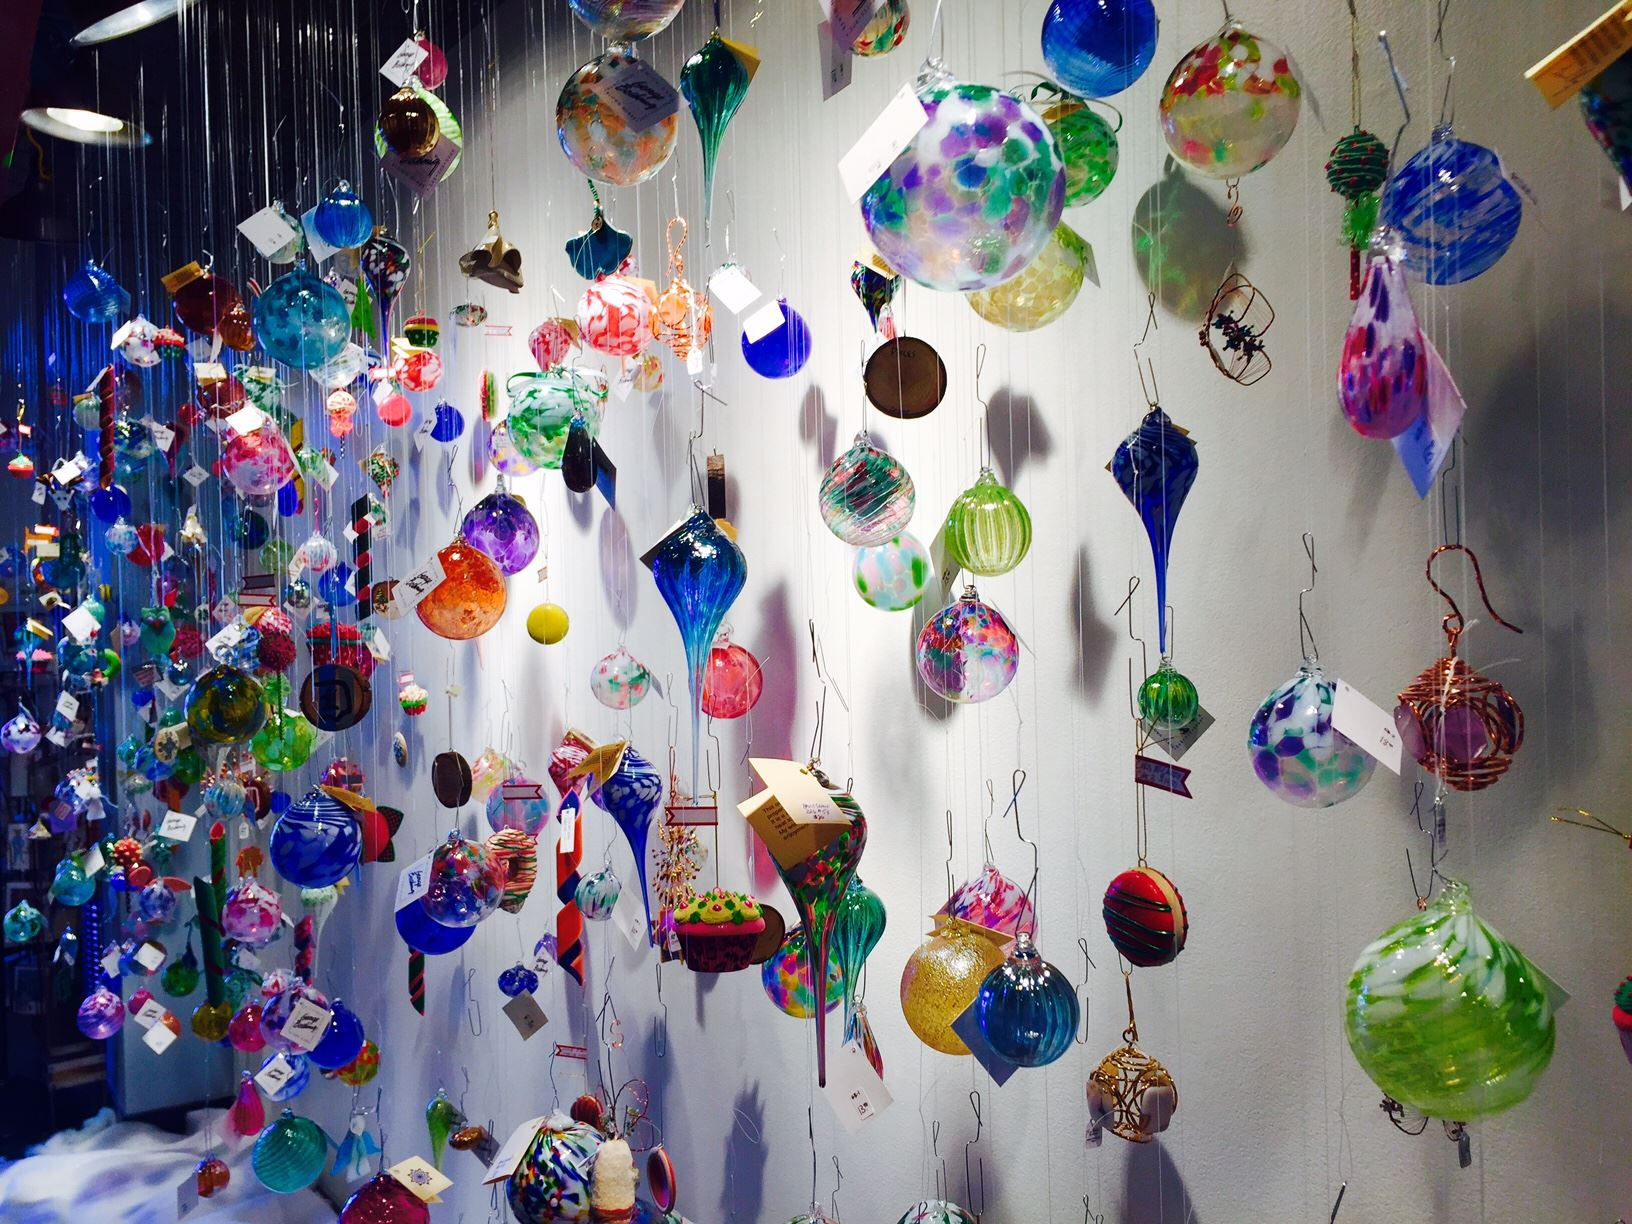 dams-magical-ornament-wall